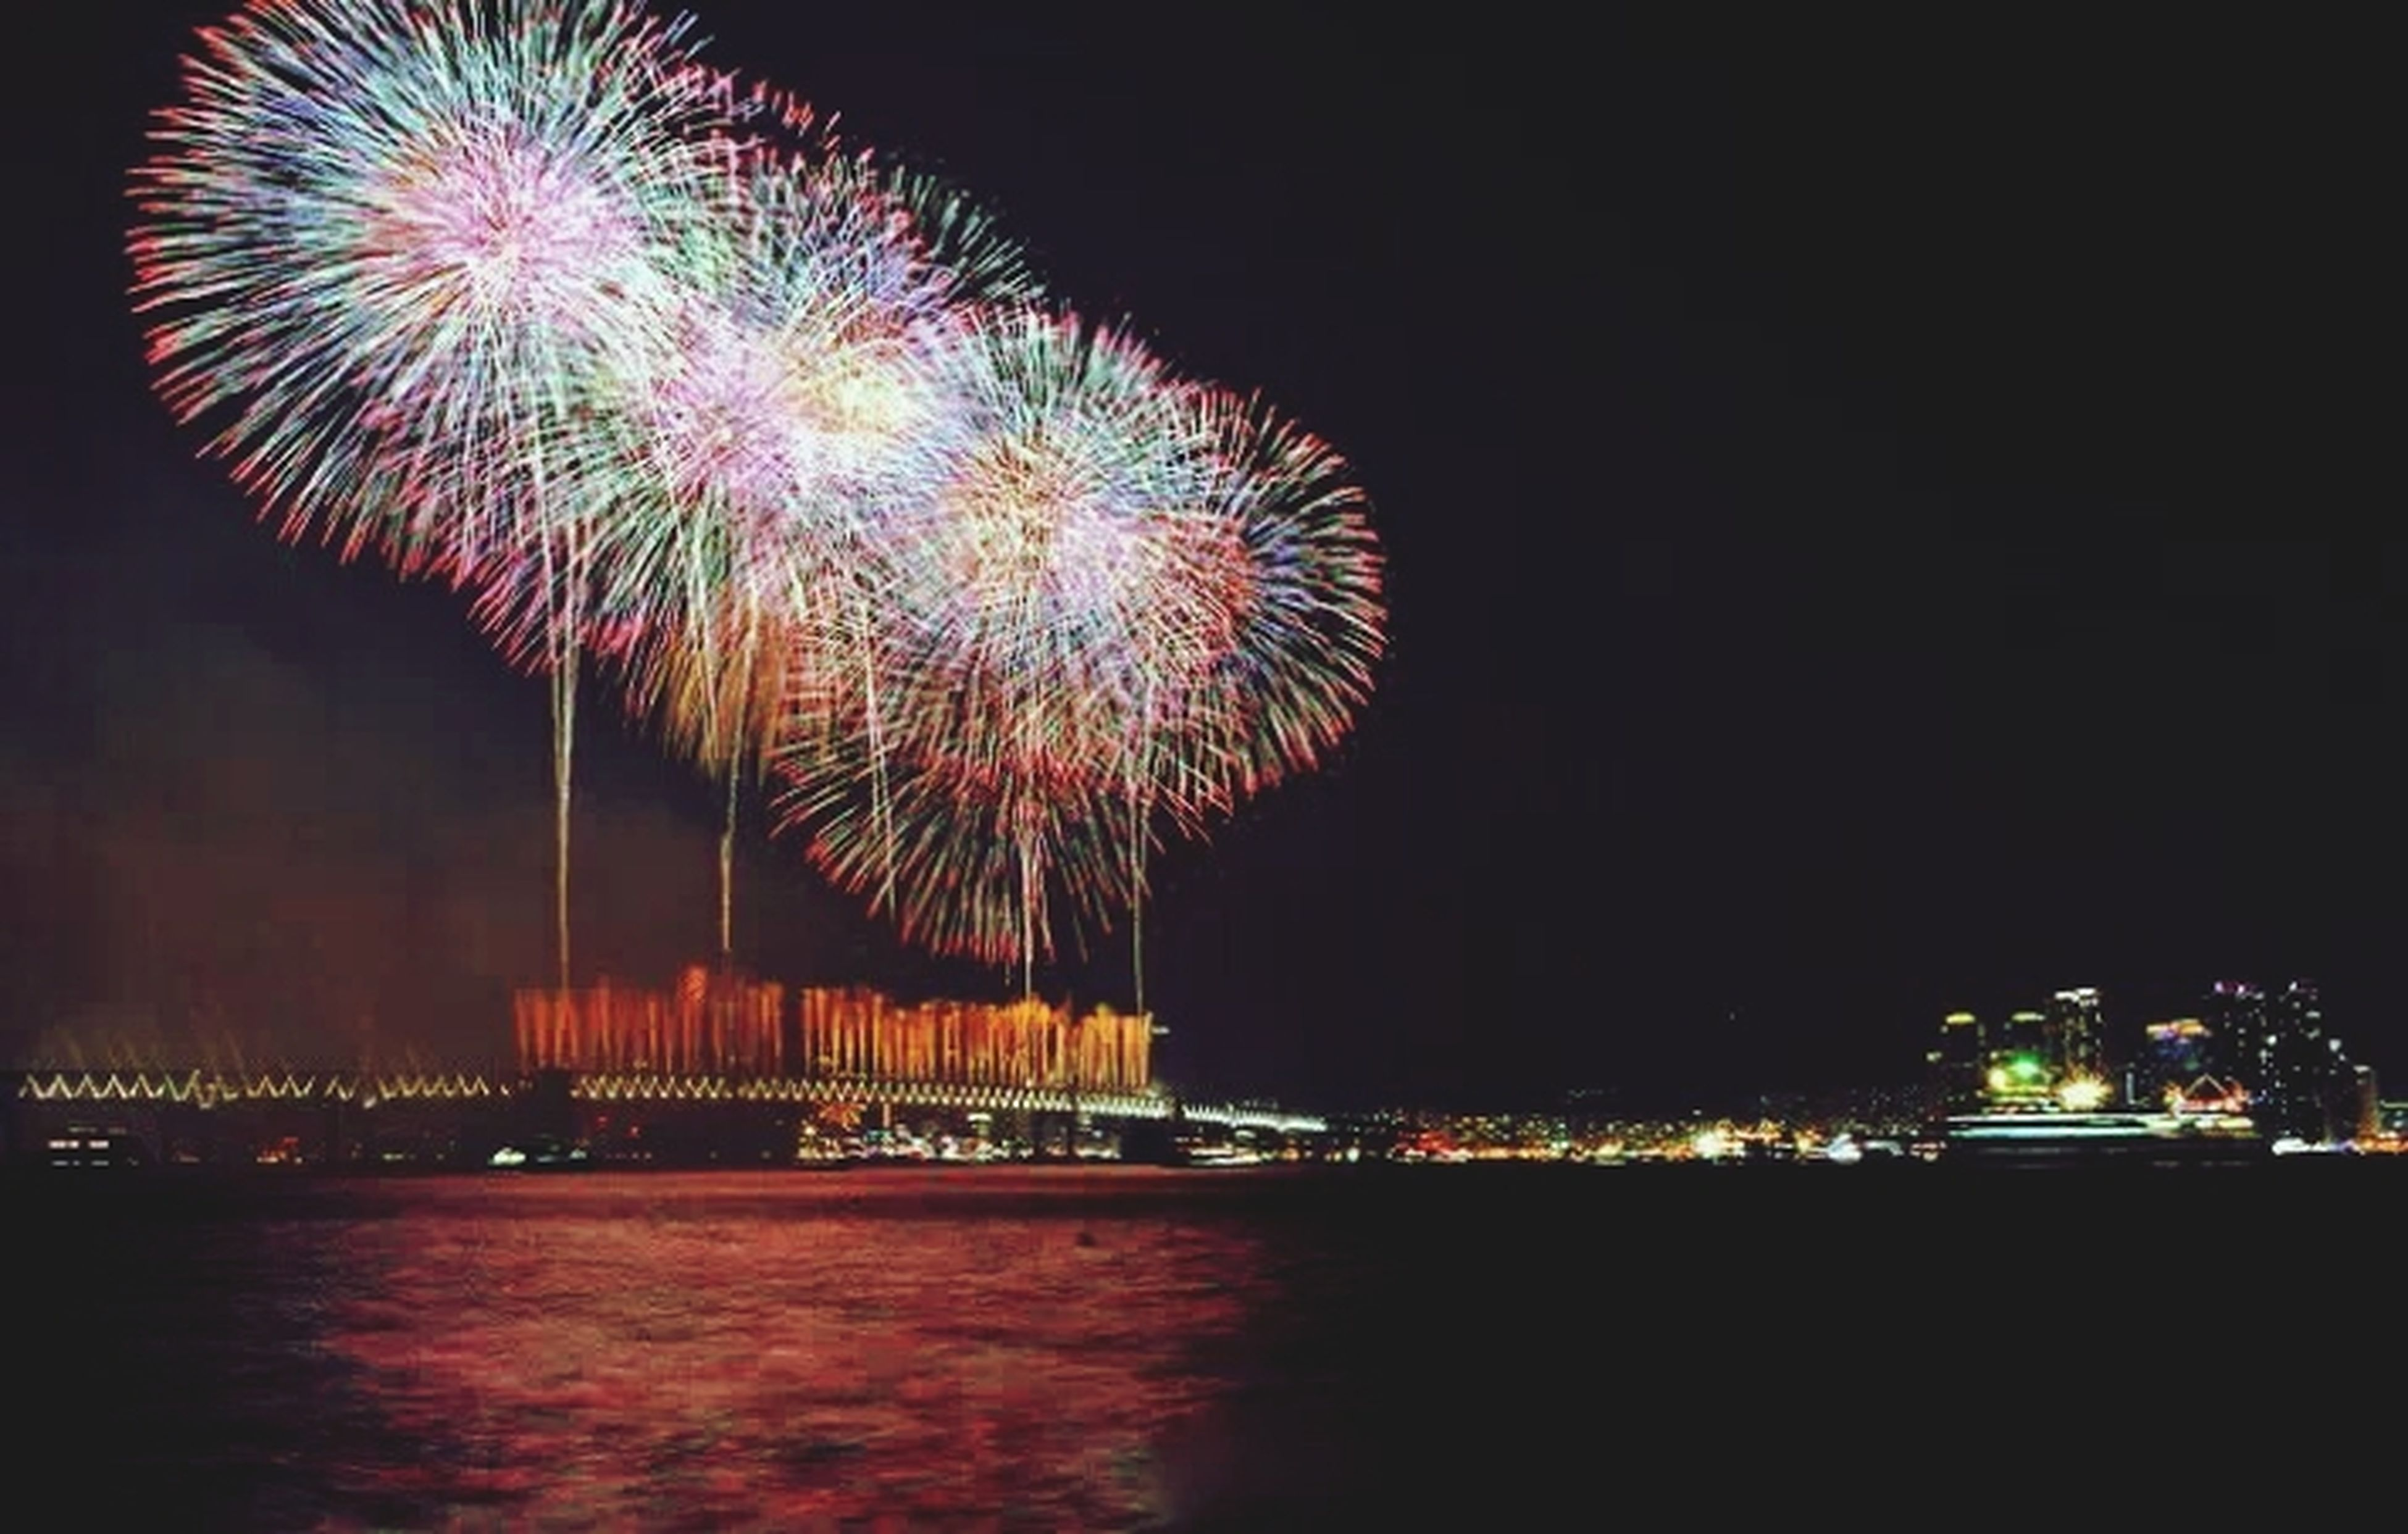 illuminated, night, long exposure, firework display, exploding, celebration, motion, arts culture and entertainment, firework - man made object, glowing, sparks, water, event, blurred motion, sky, multi colored, building exterior, river, city, waterfront